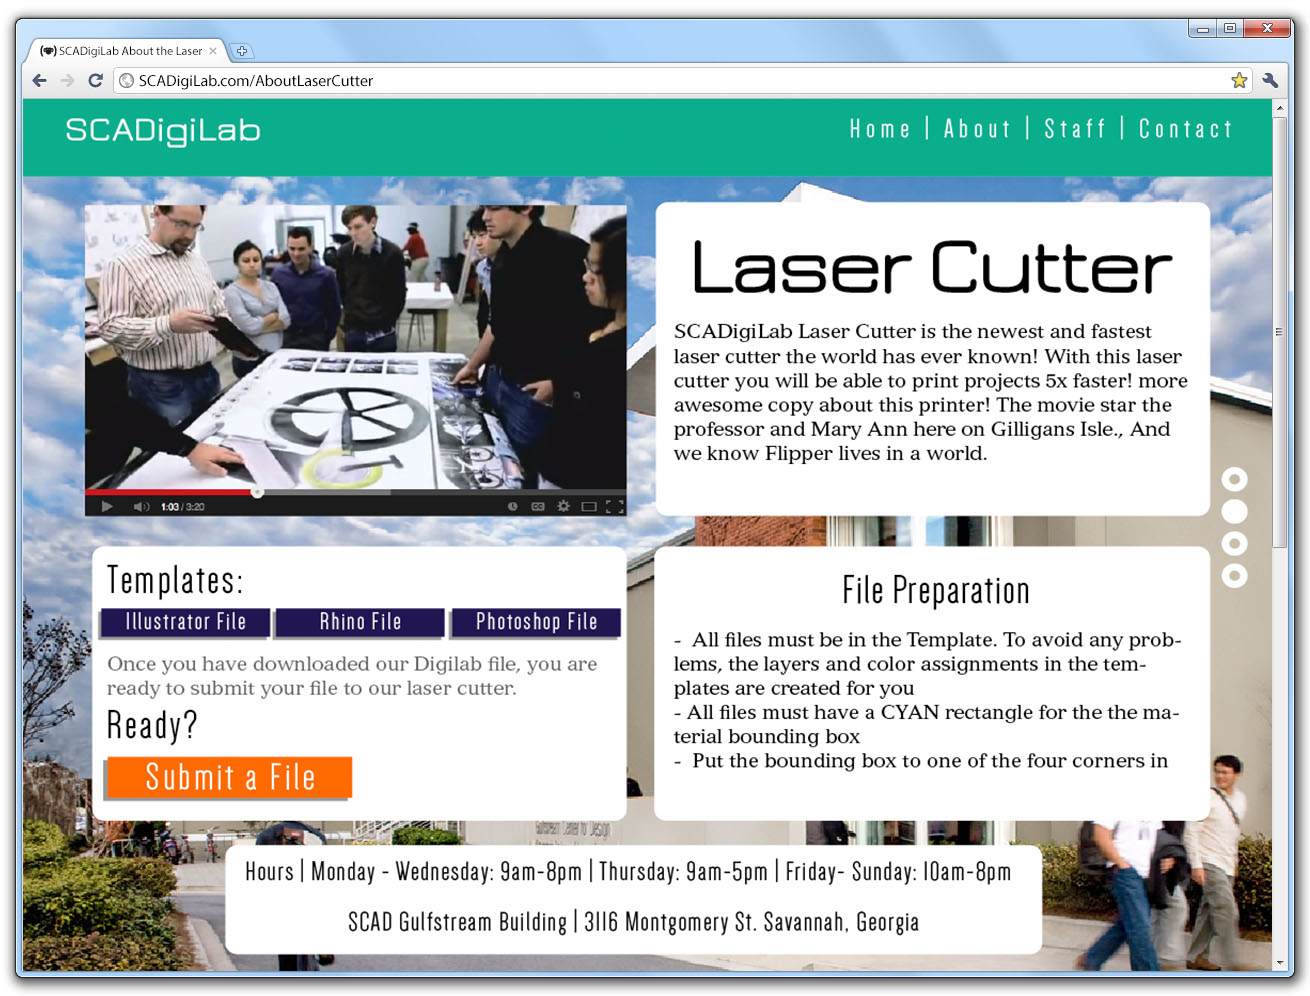 SCAD DigiLab About the Laser Cutter